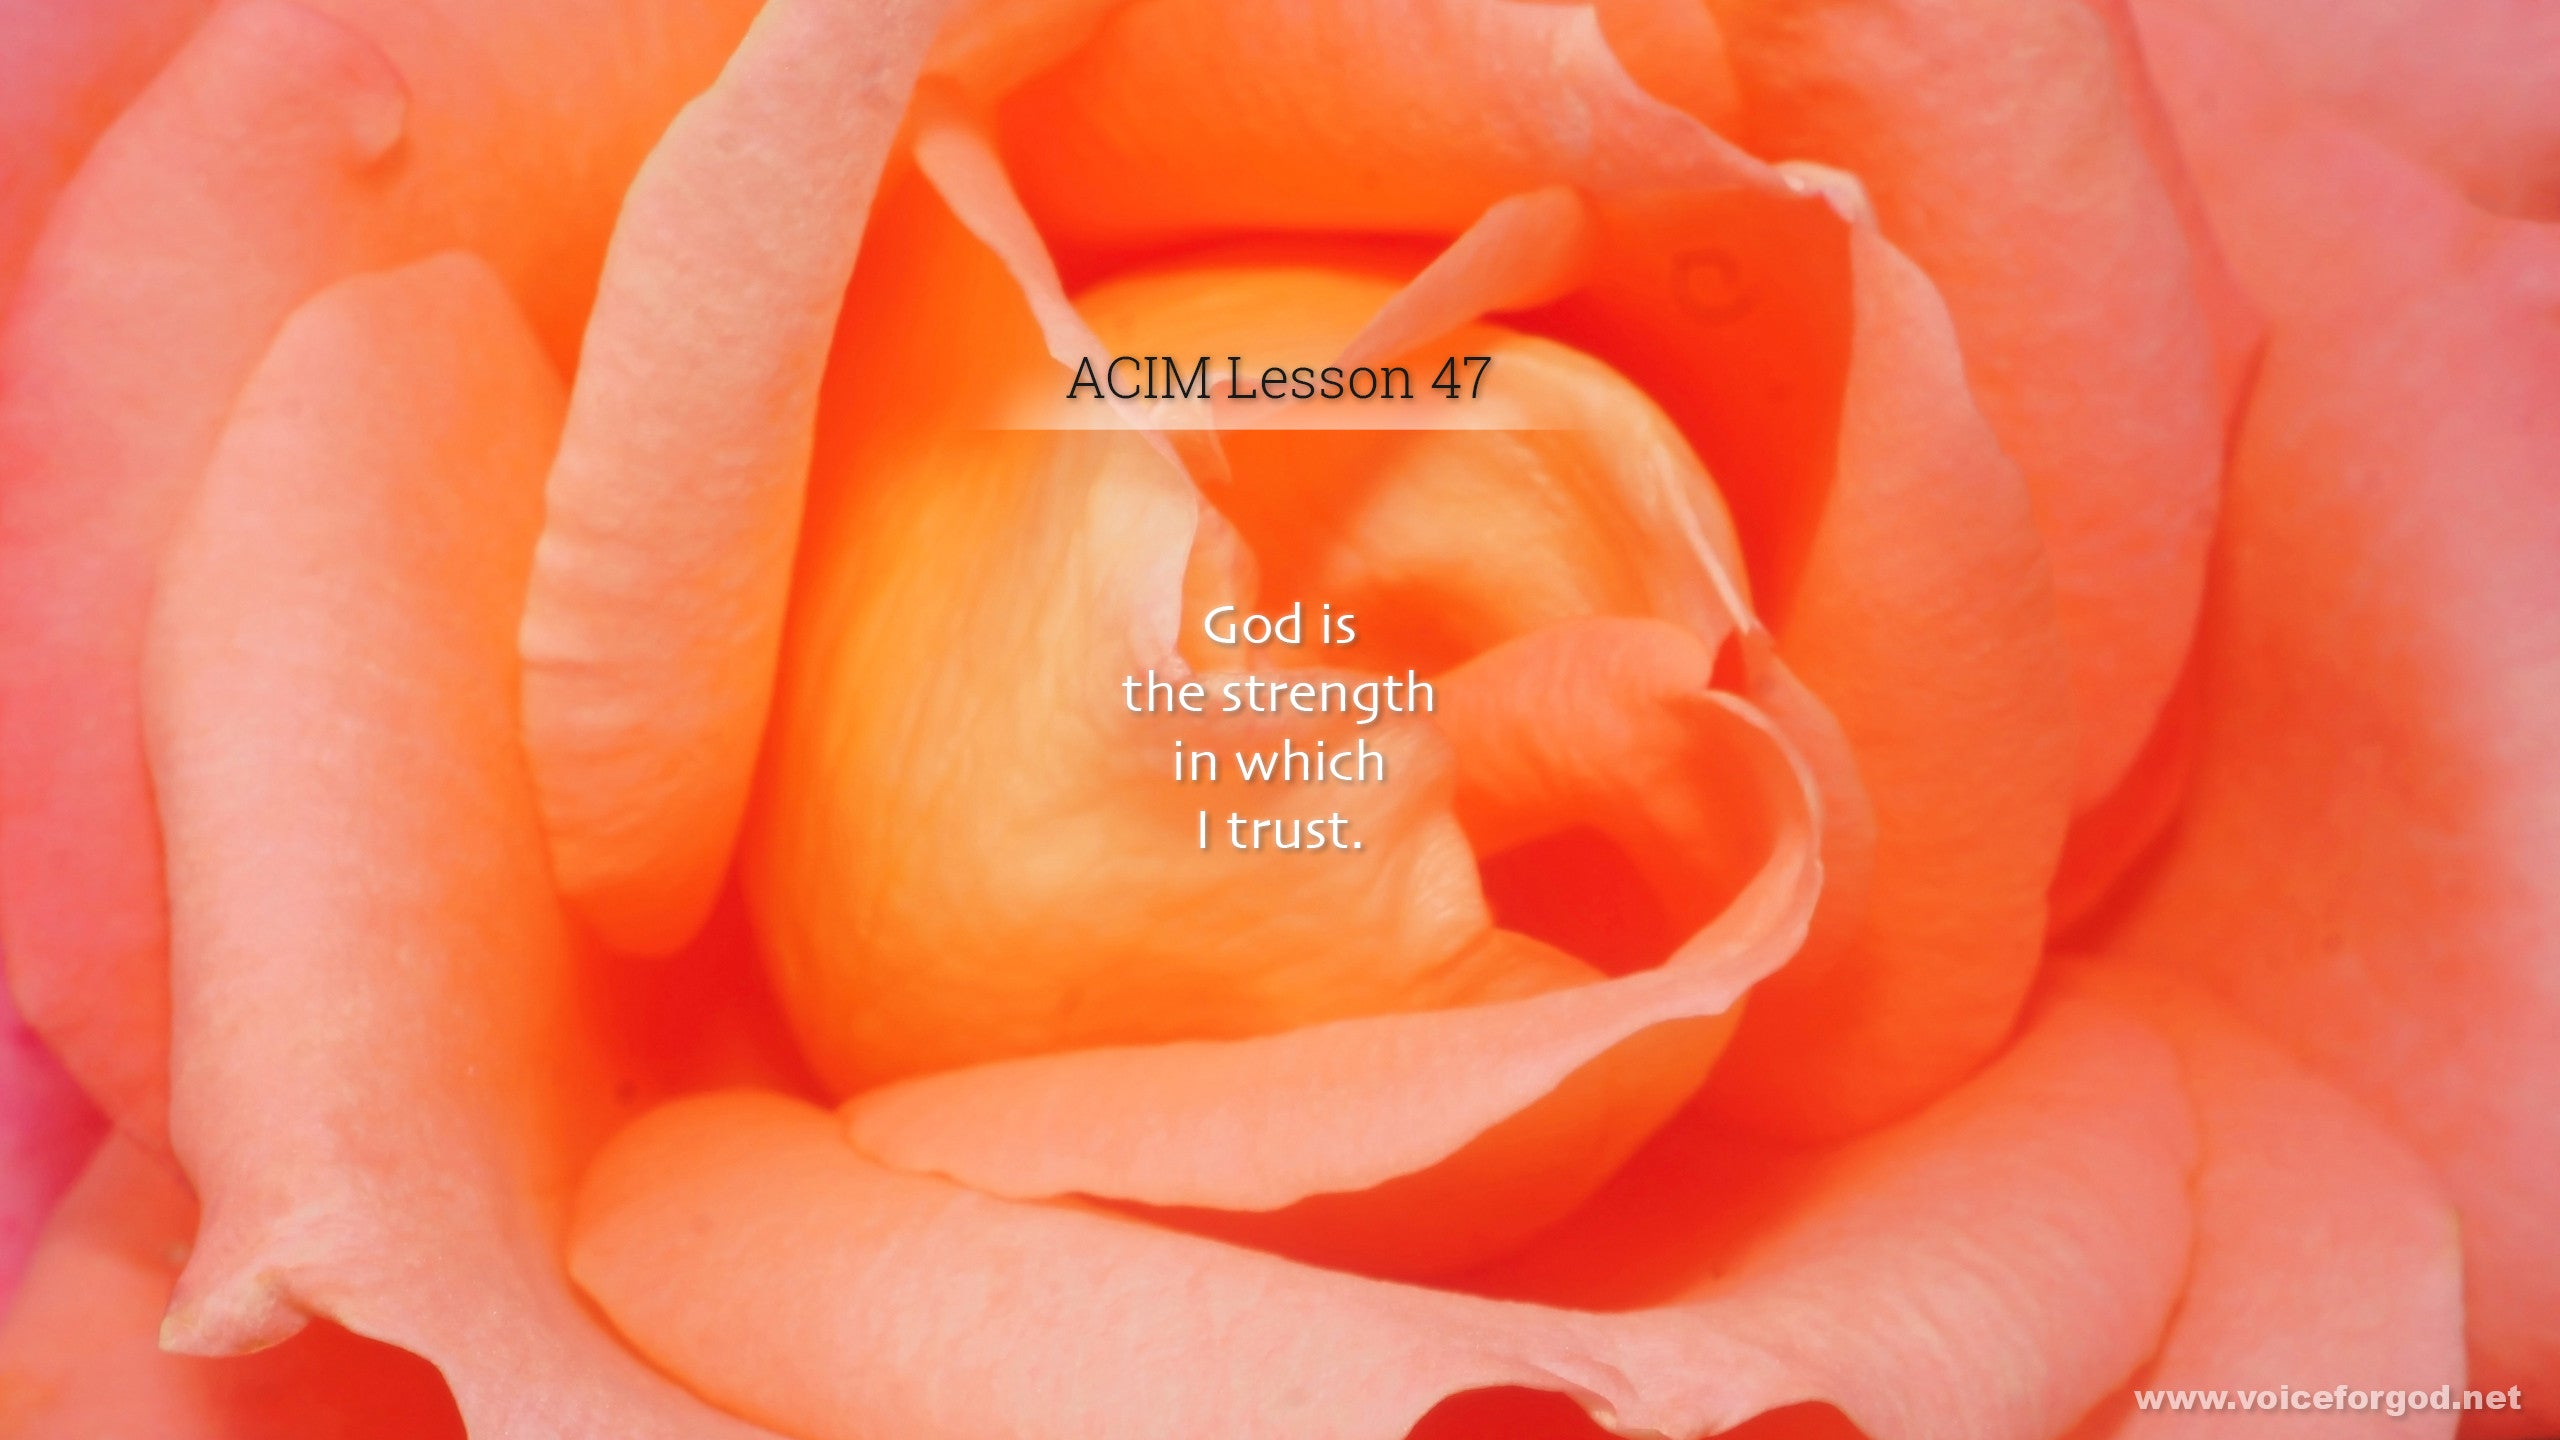 ACIM Lesson 47 - A Course in Miracles Workbook Lesson 47